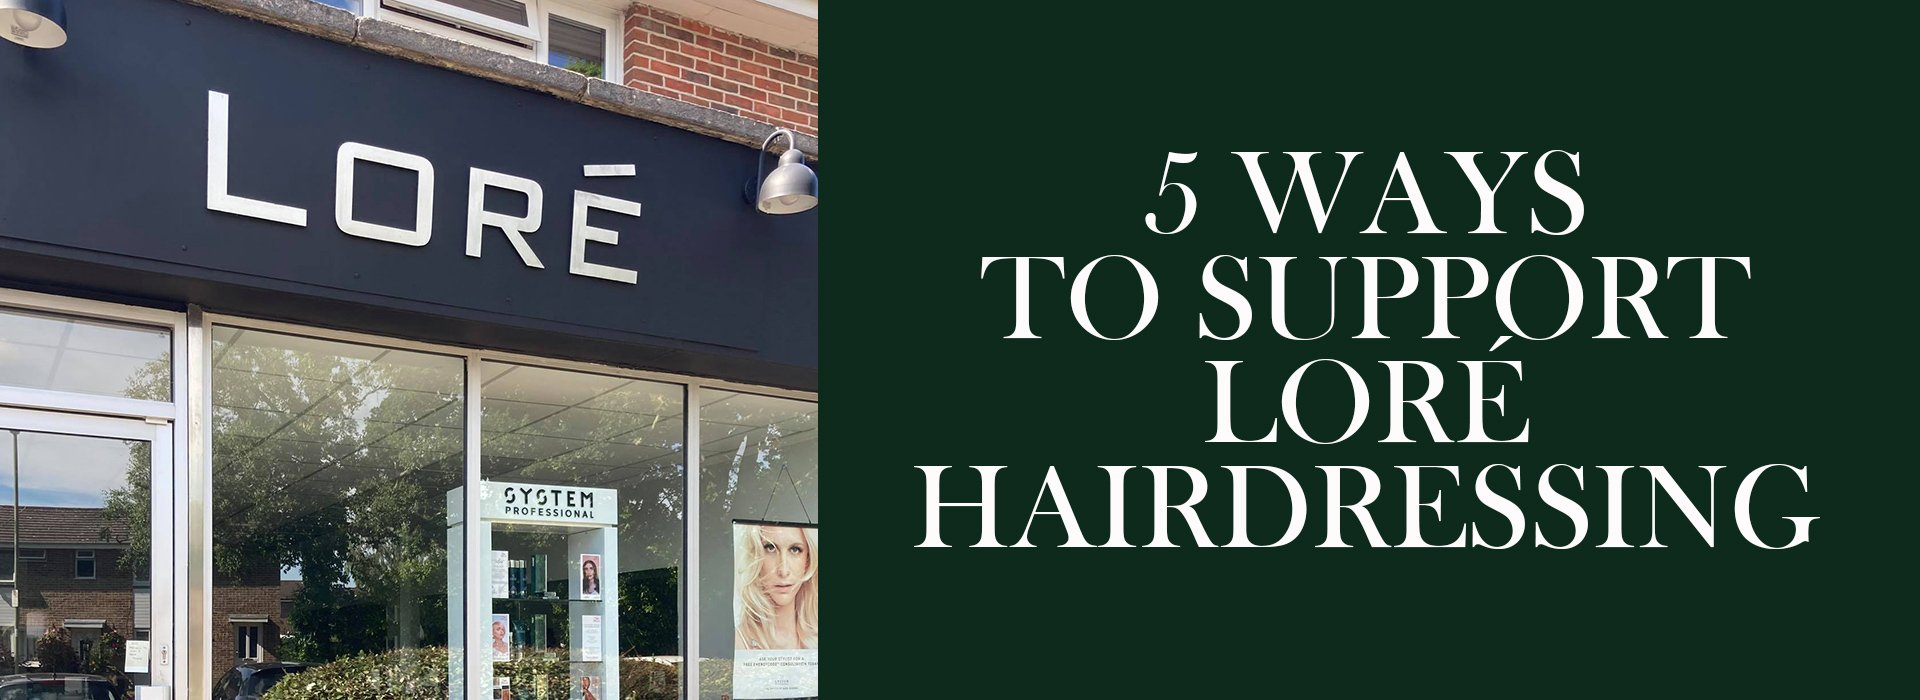 5 Ways To Support Loré Hairdressing Lore Hairdressing Salon in North Baddlesley